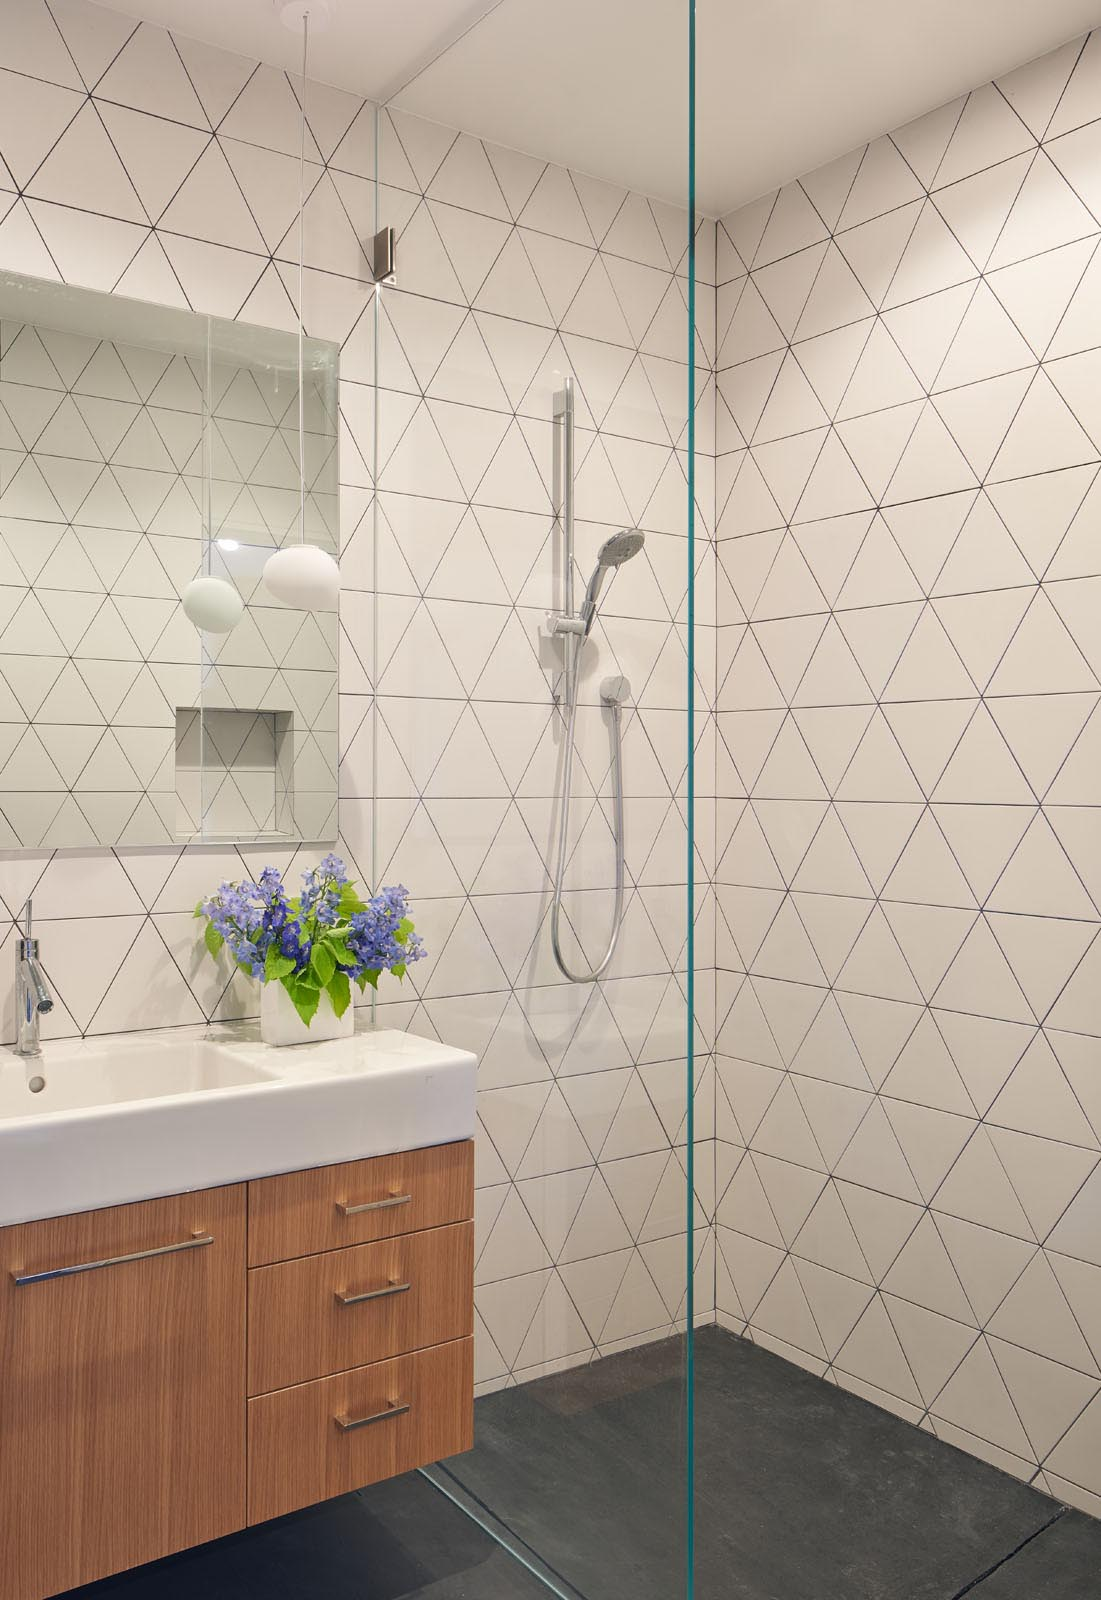 In this modern bathroom, triangular tiles cover the walls with the dark grout used to highlight the design.